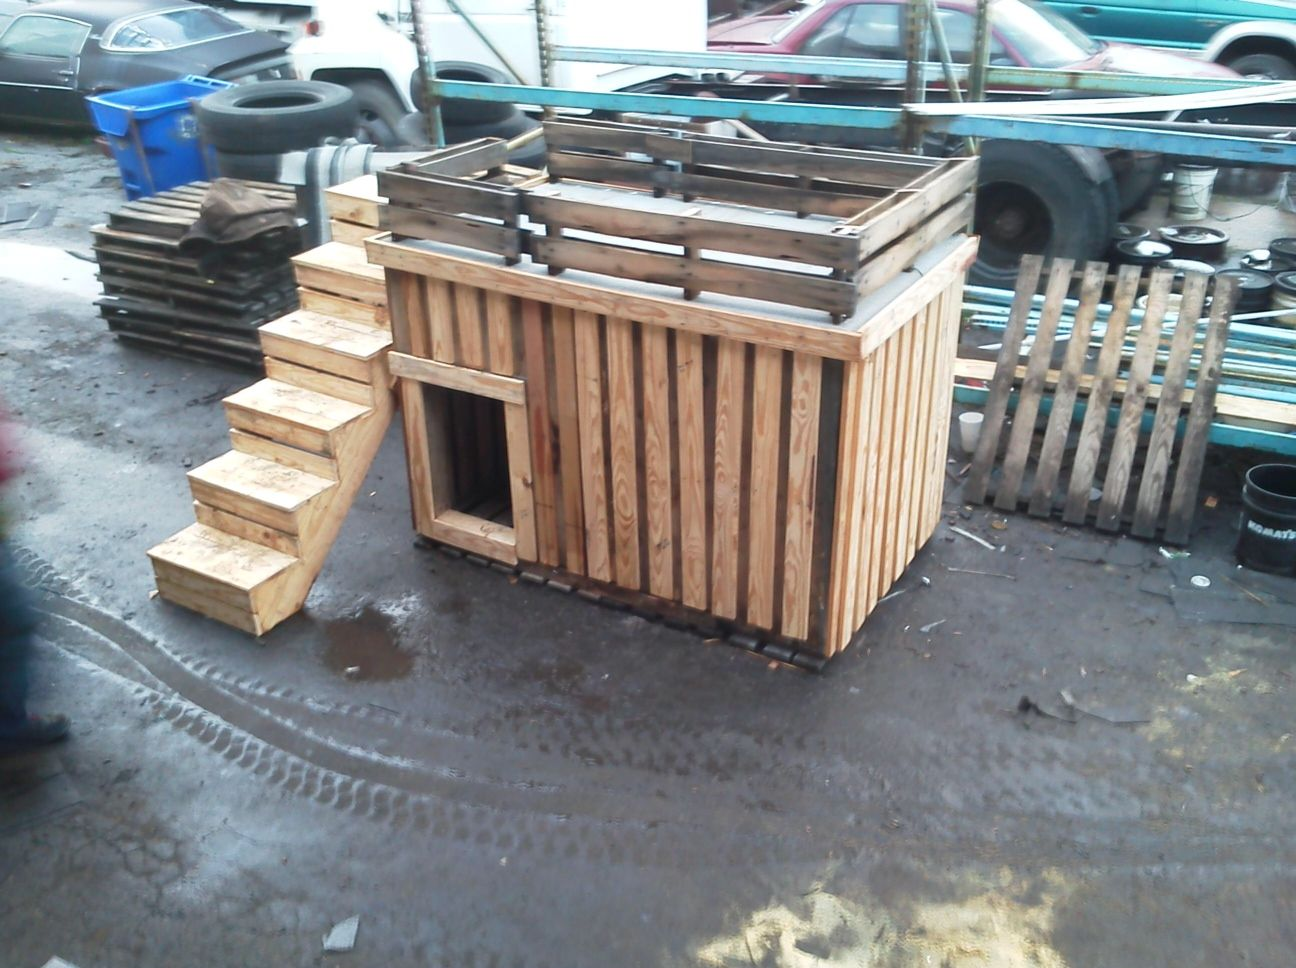 House Made From Pallets Dog House Made From Palletslove The Deck Wonder If I Can Make